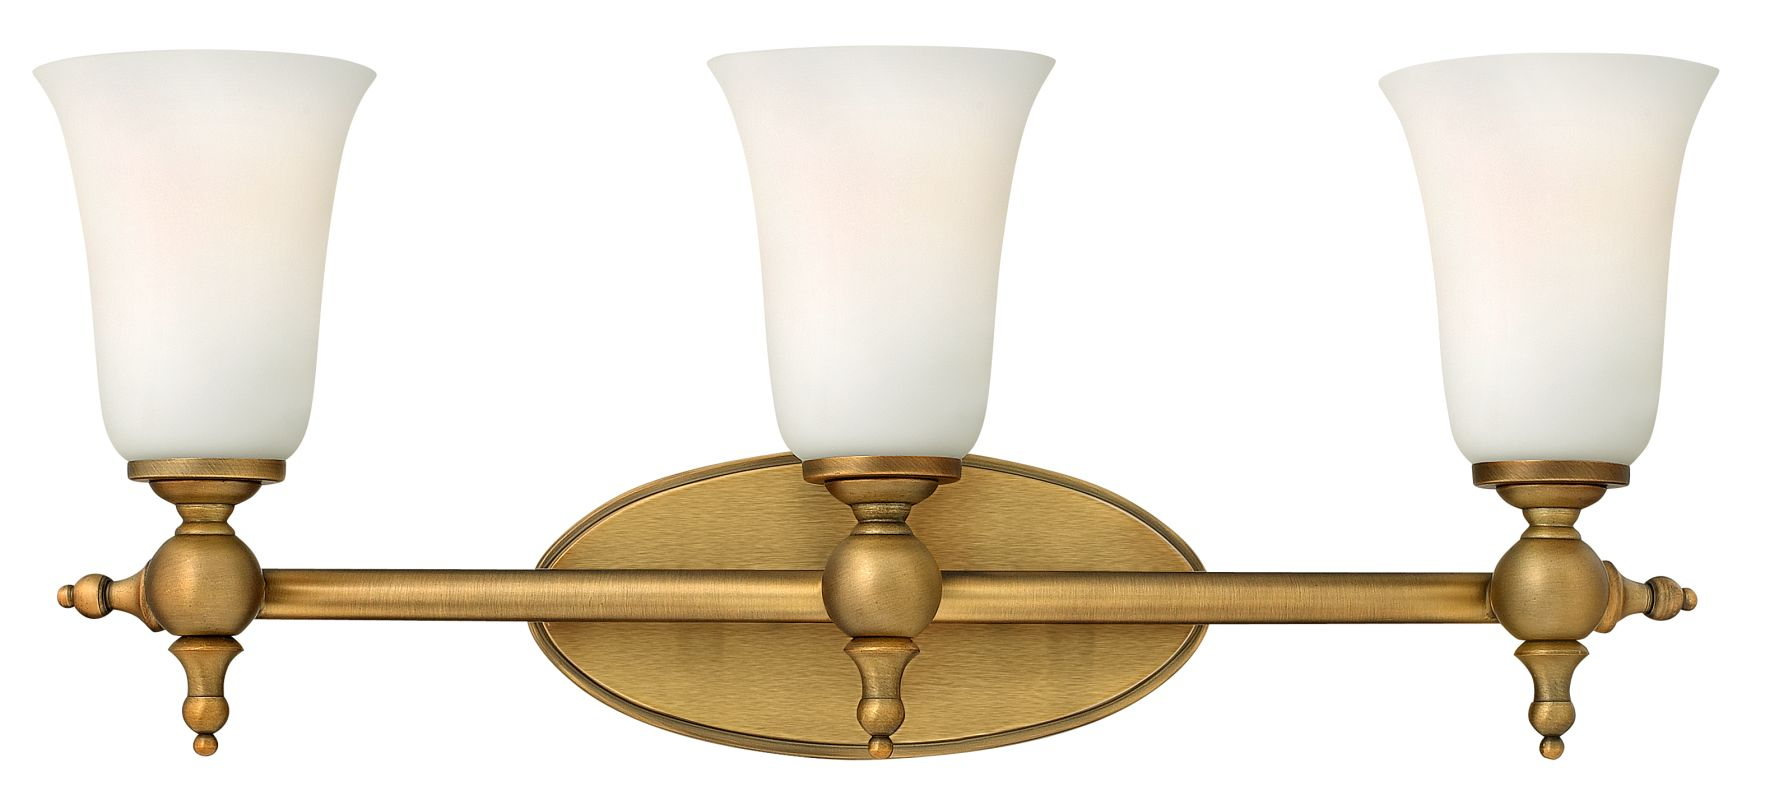 "Hinkley Lighting 5743 3 Light 23.75"" Width Bathroom Vanity Light from"